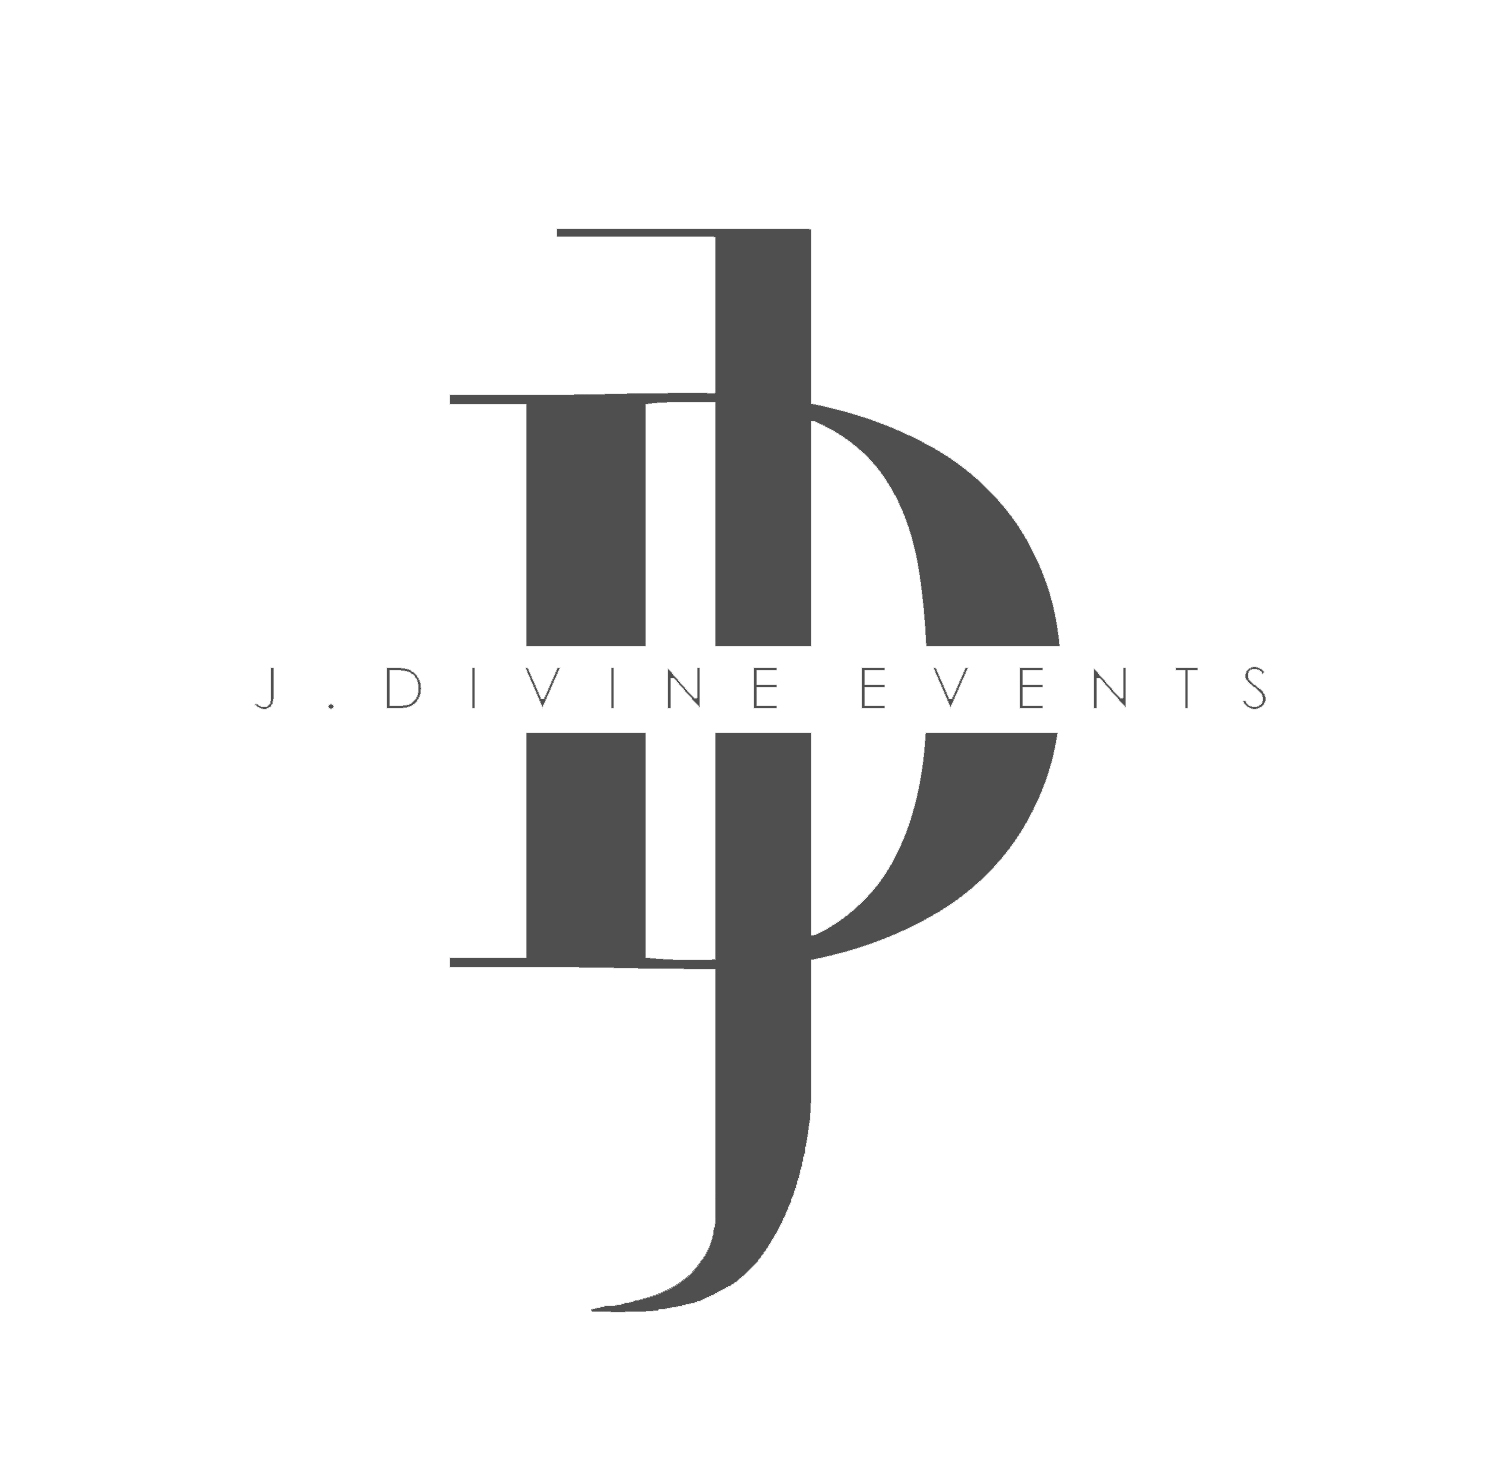 jd initial based white